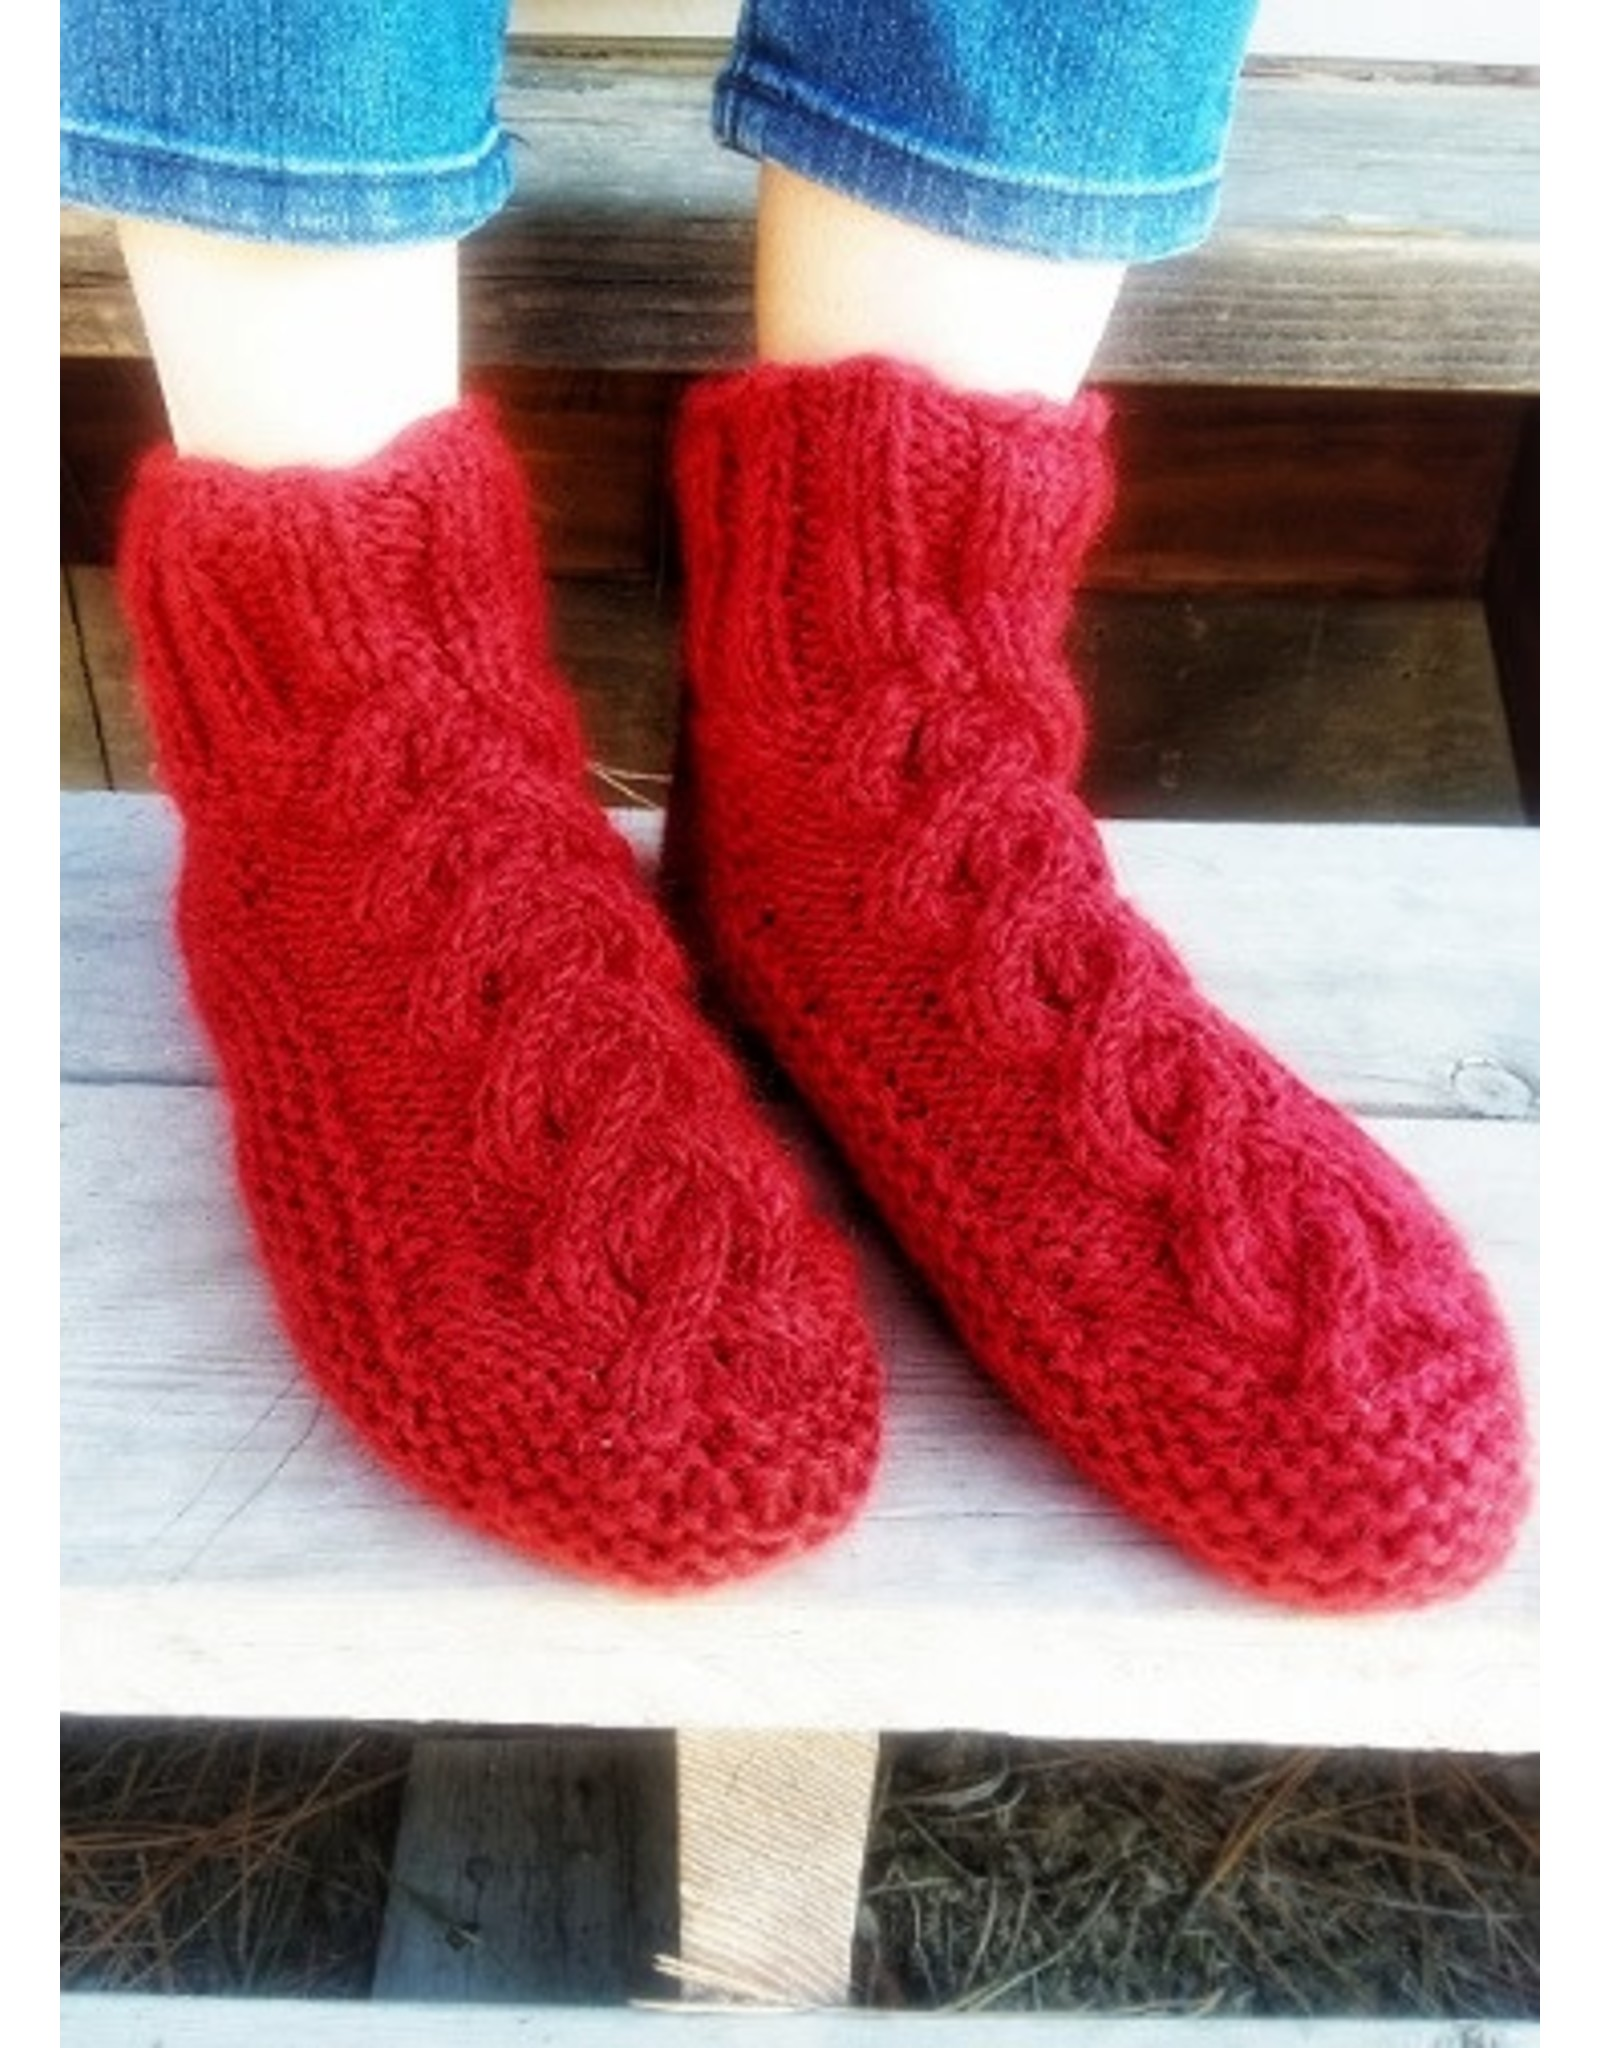 Cable Knit Fleece Lined Slippers, COLORS VARY, Nepal